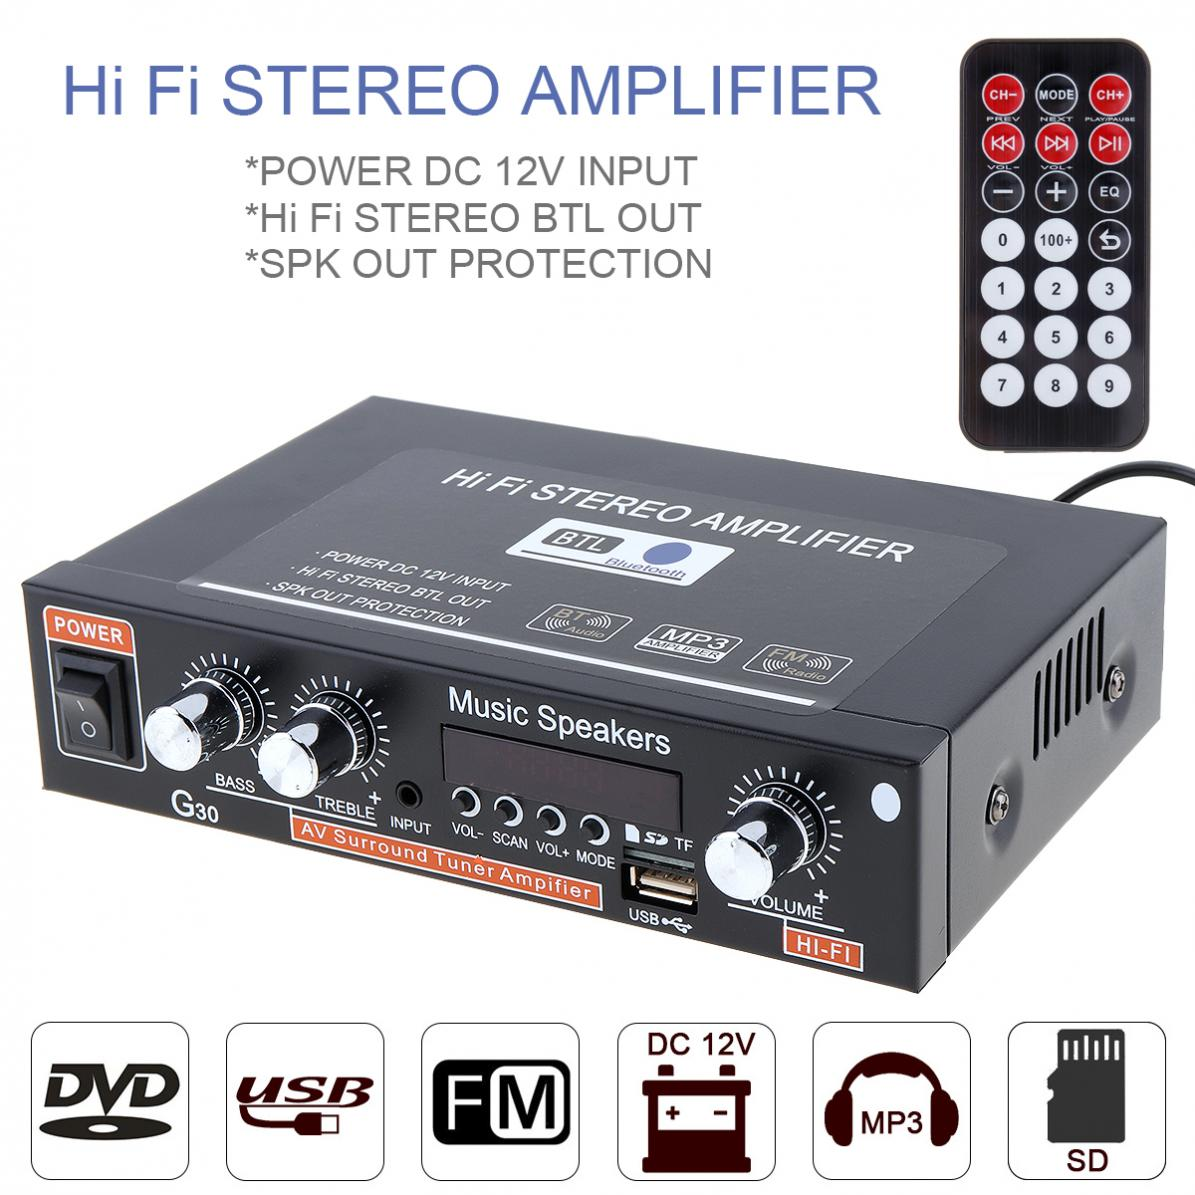 G30 HIFI Bluetooth Car Audio Power Amplifier FM Radio Player Support SD / USB / DVD / MP3 with Remote Controller for Car